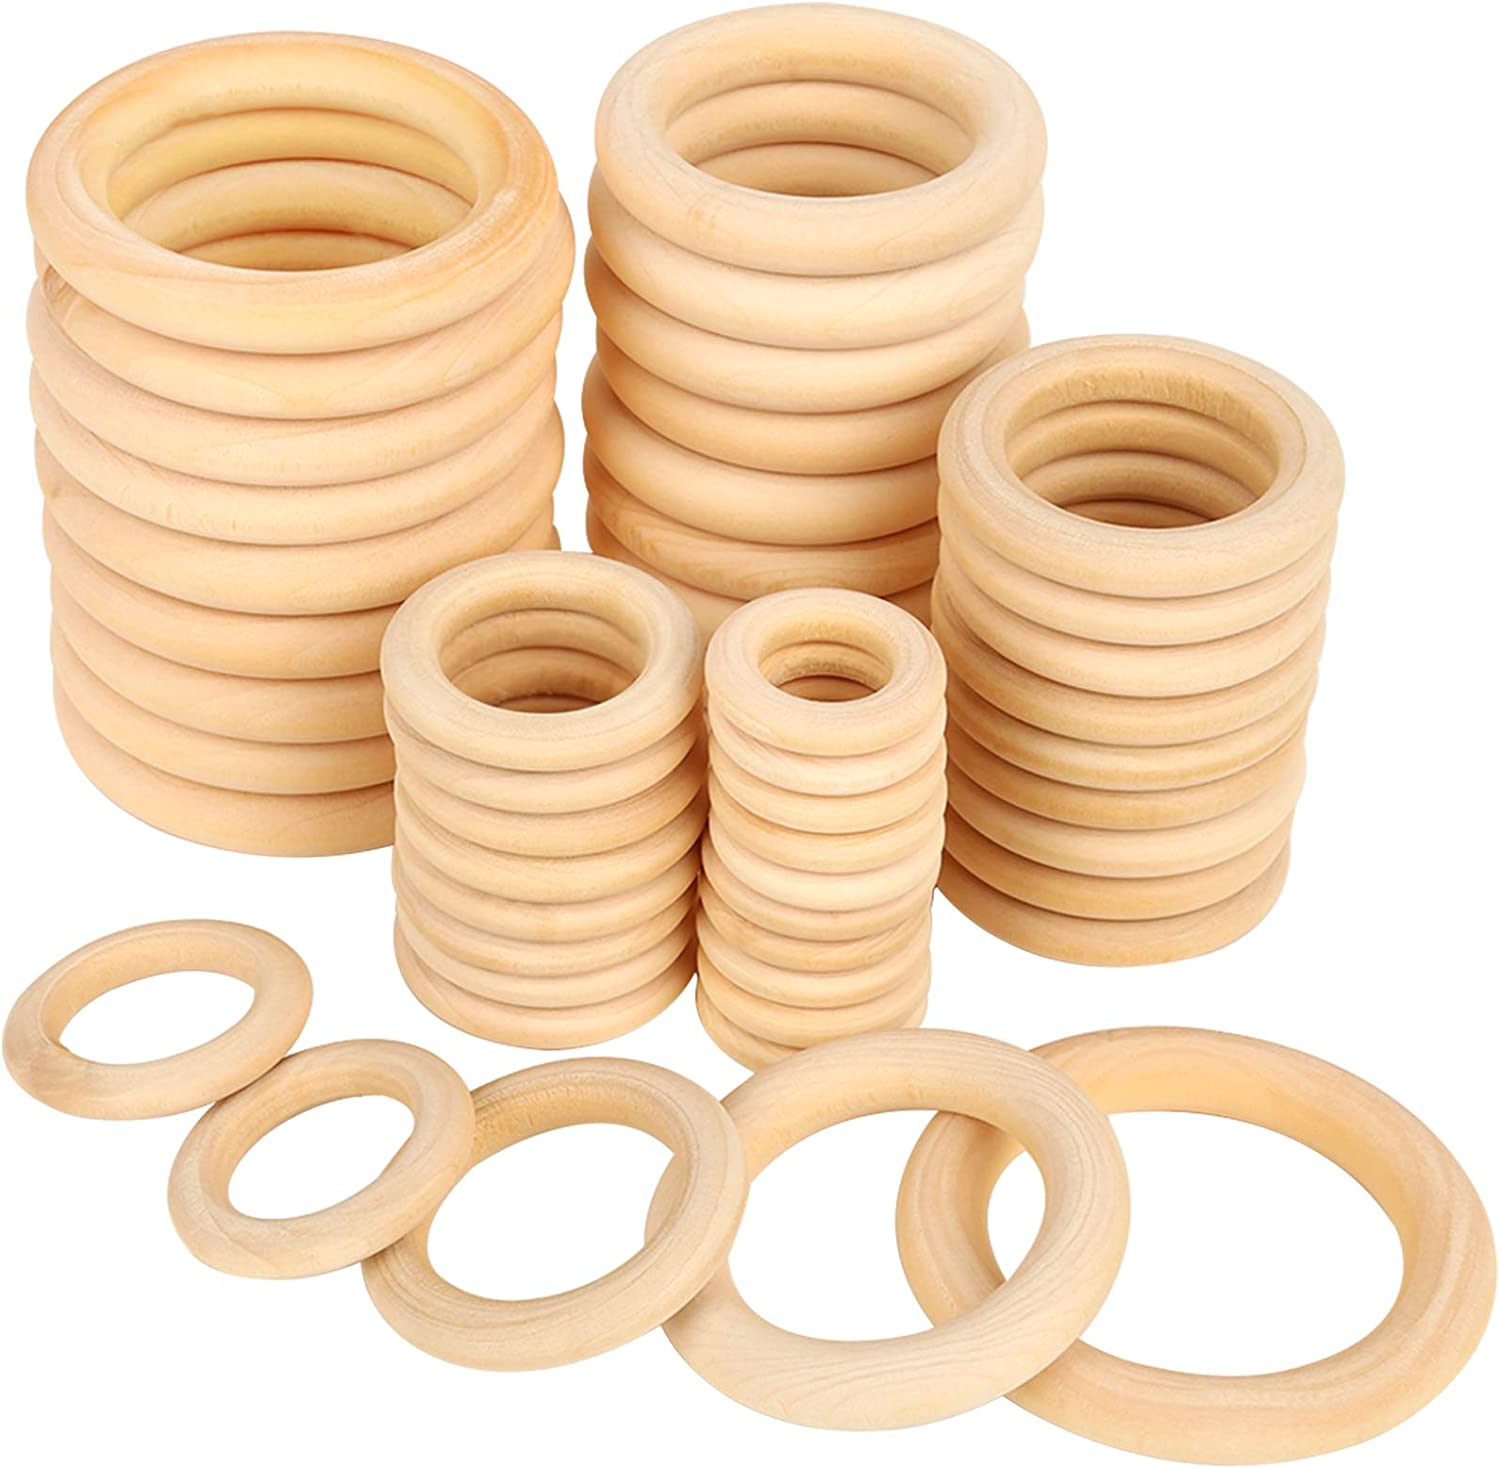 5-50Pcs DIY Accessories Wooden Ring Round Circle Buckle Craft Curtain Decoration